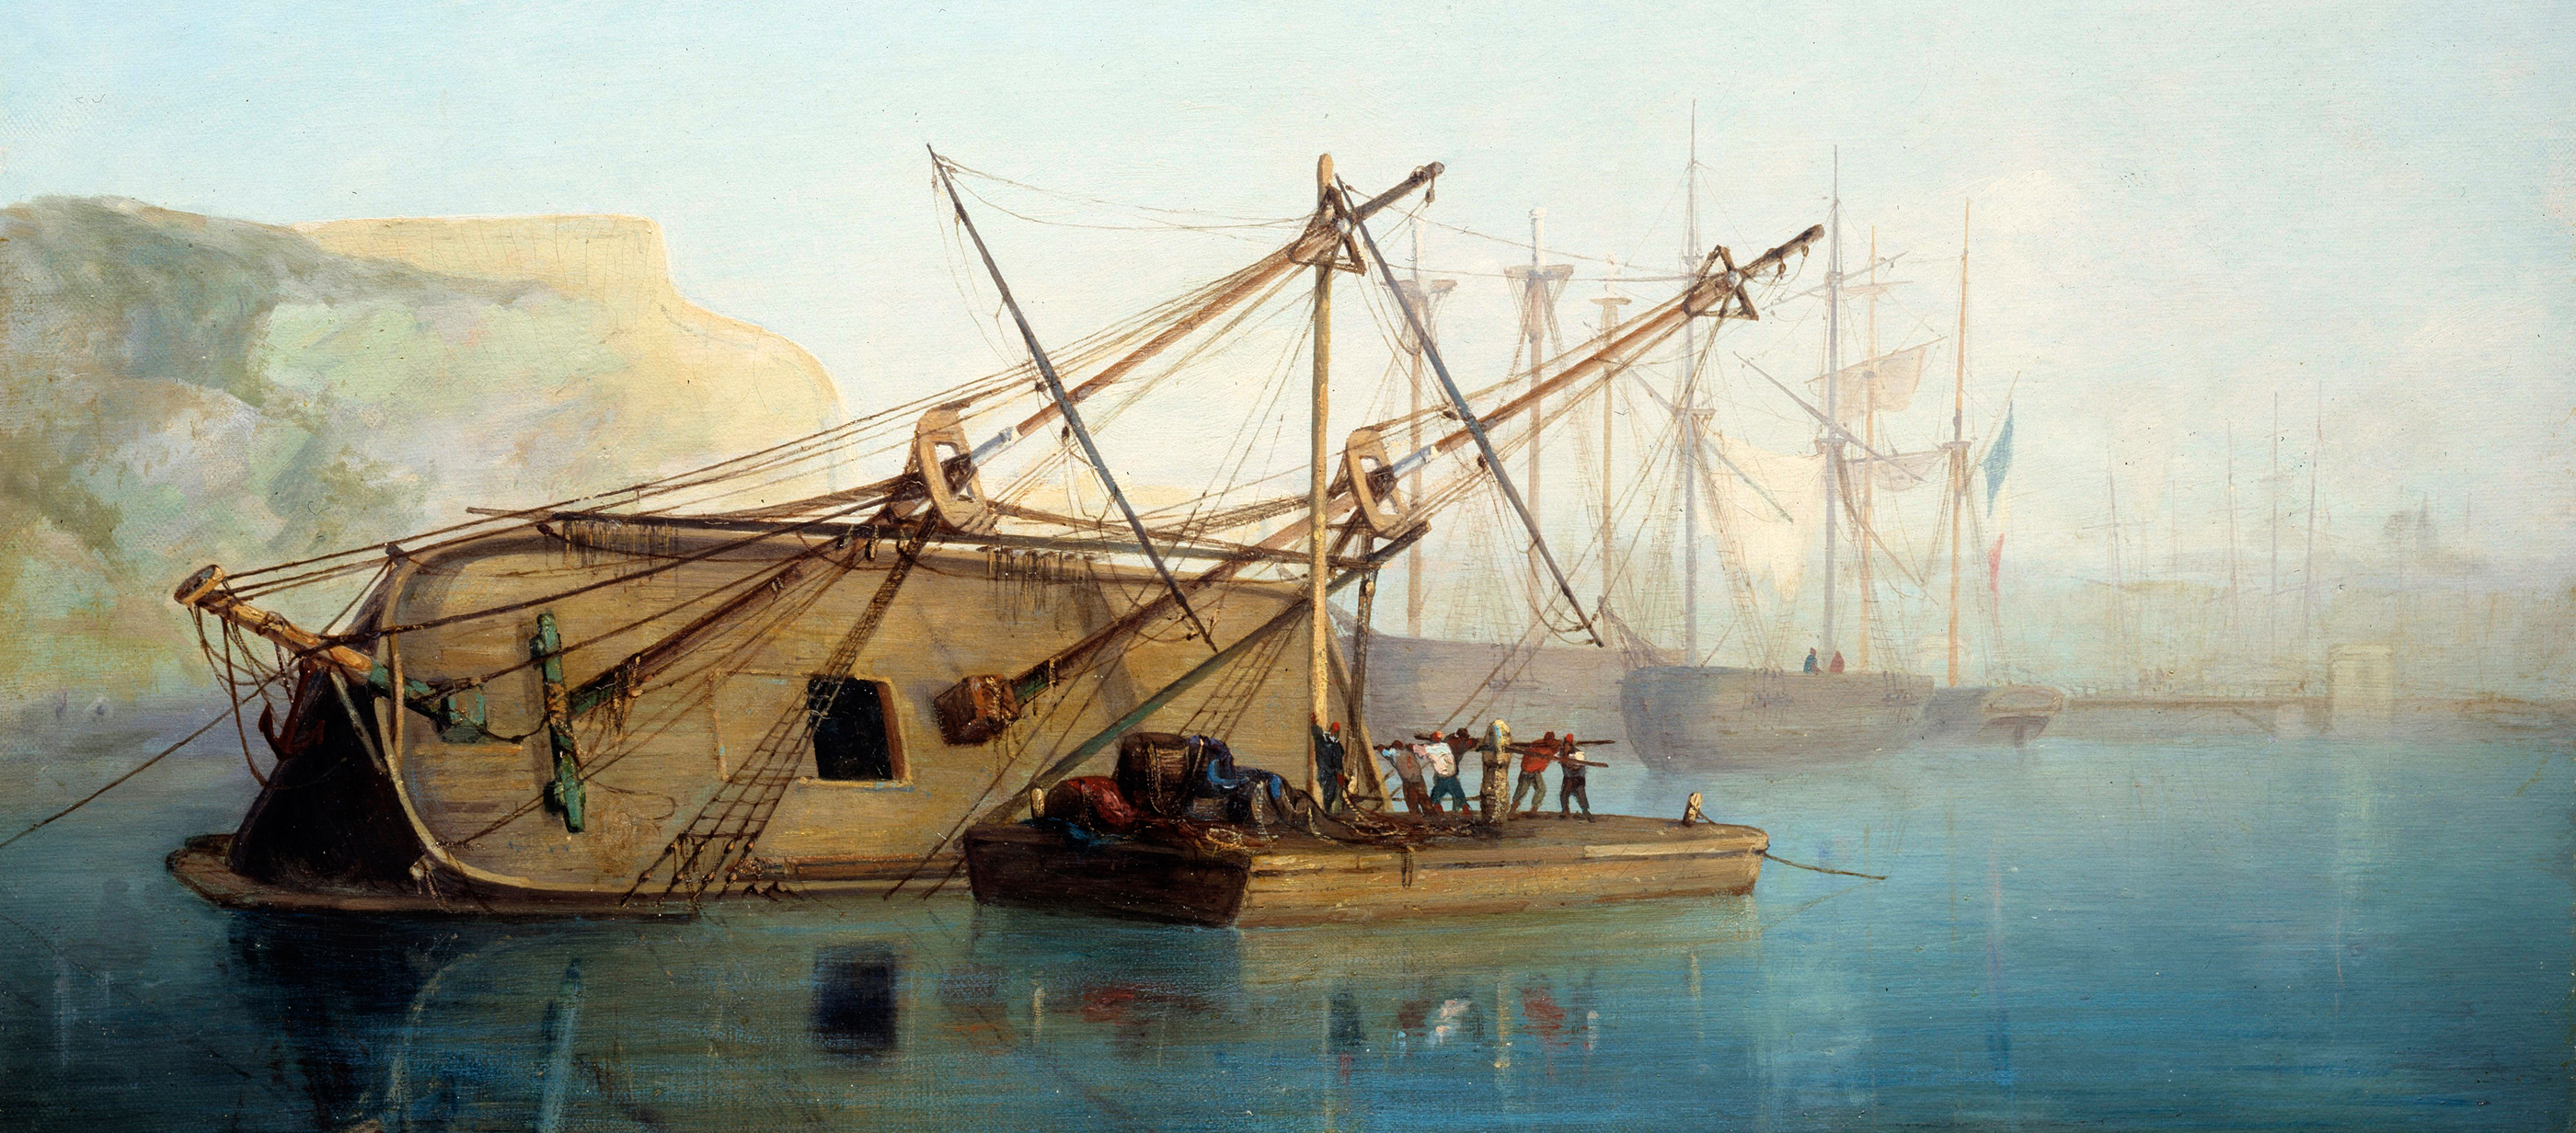 Ship on its side for repairs, by Auguste Aiguier, 1846.